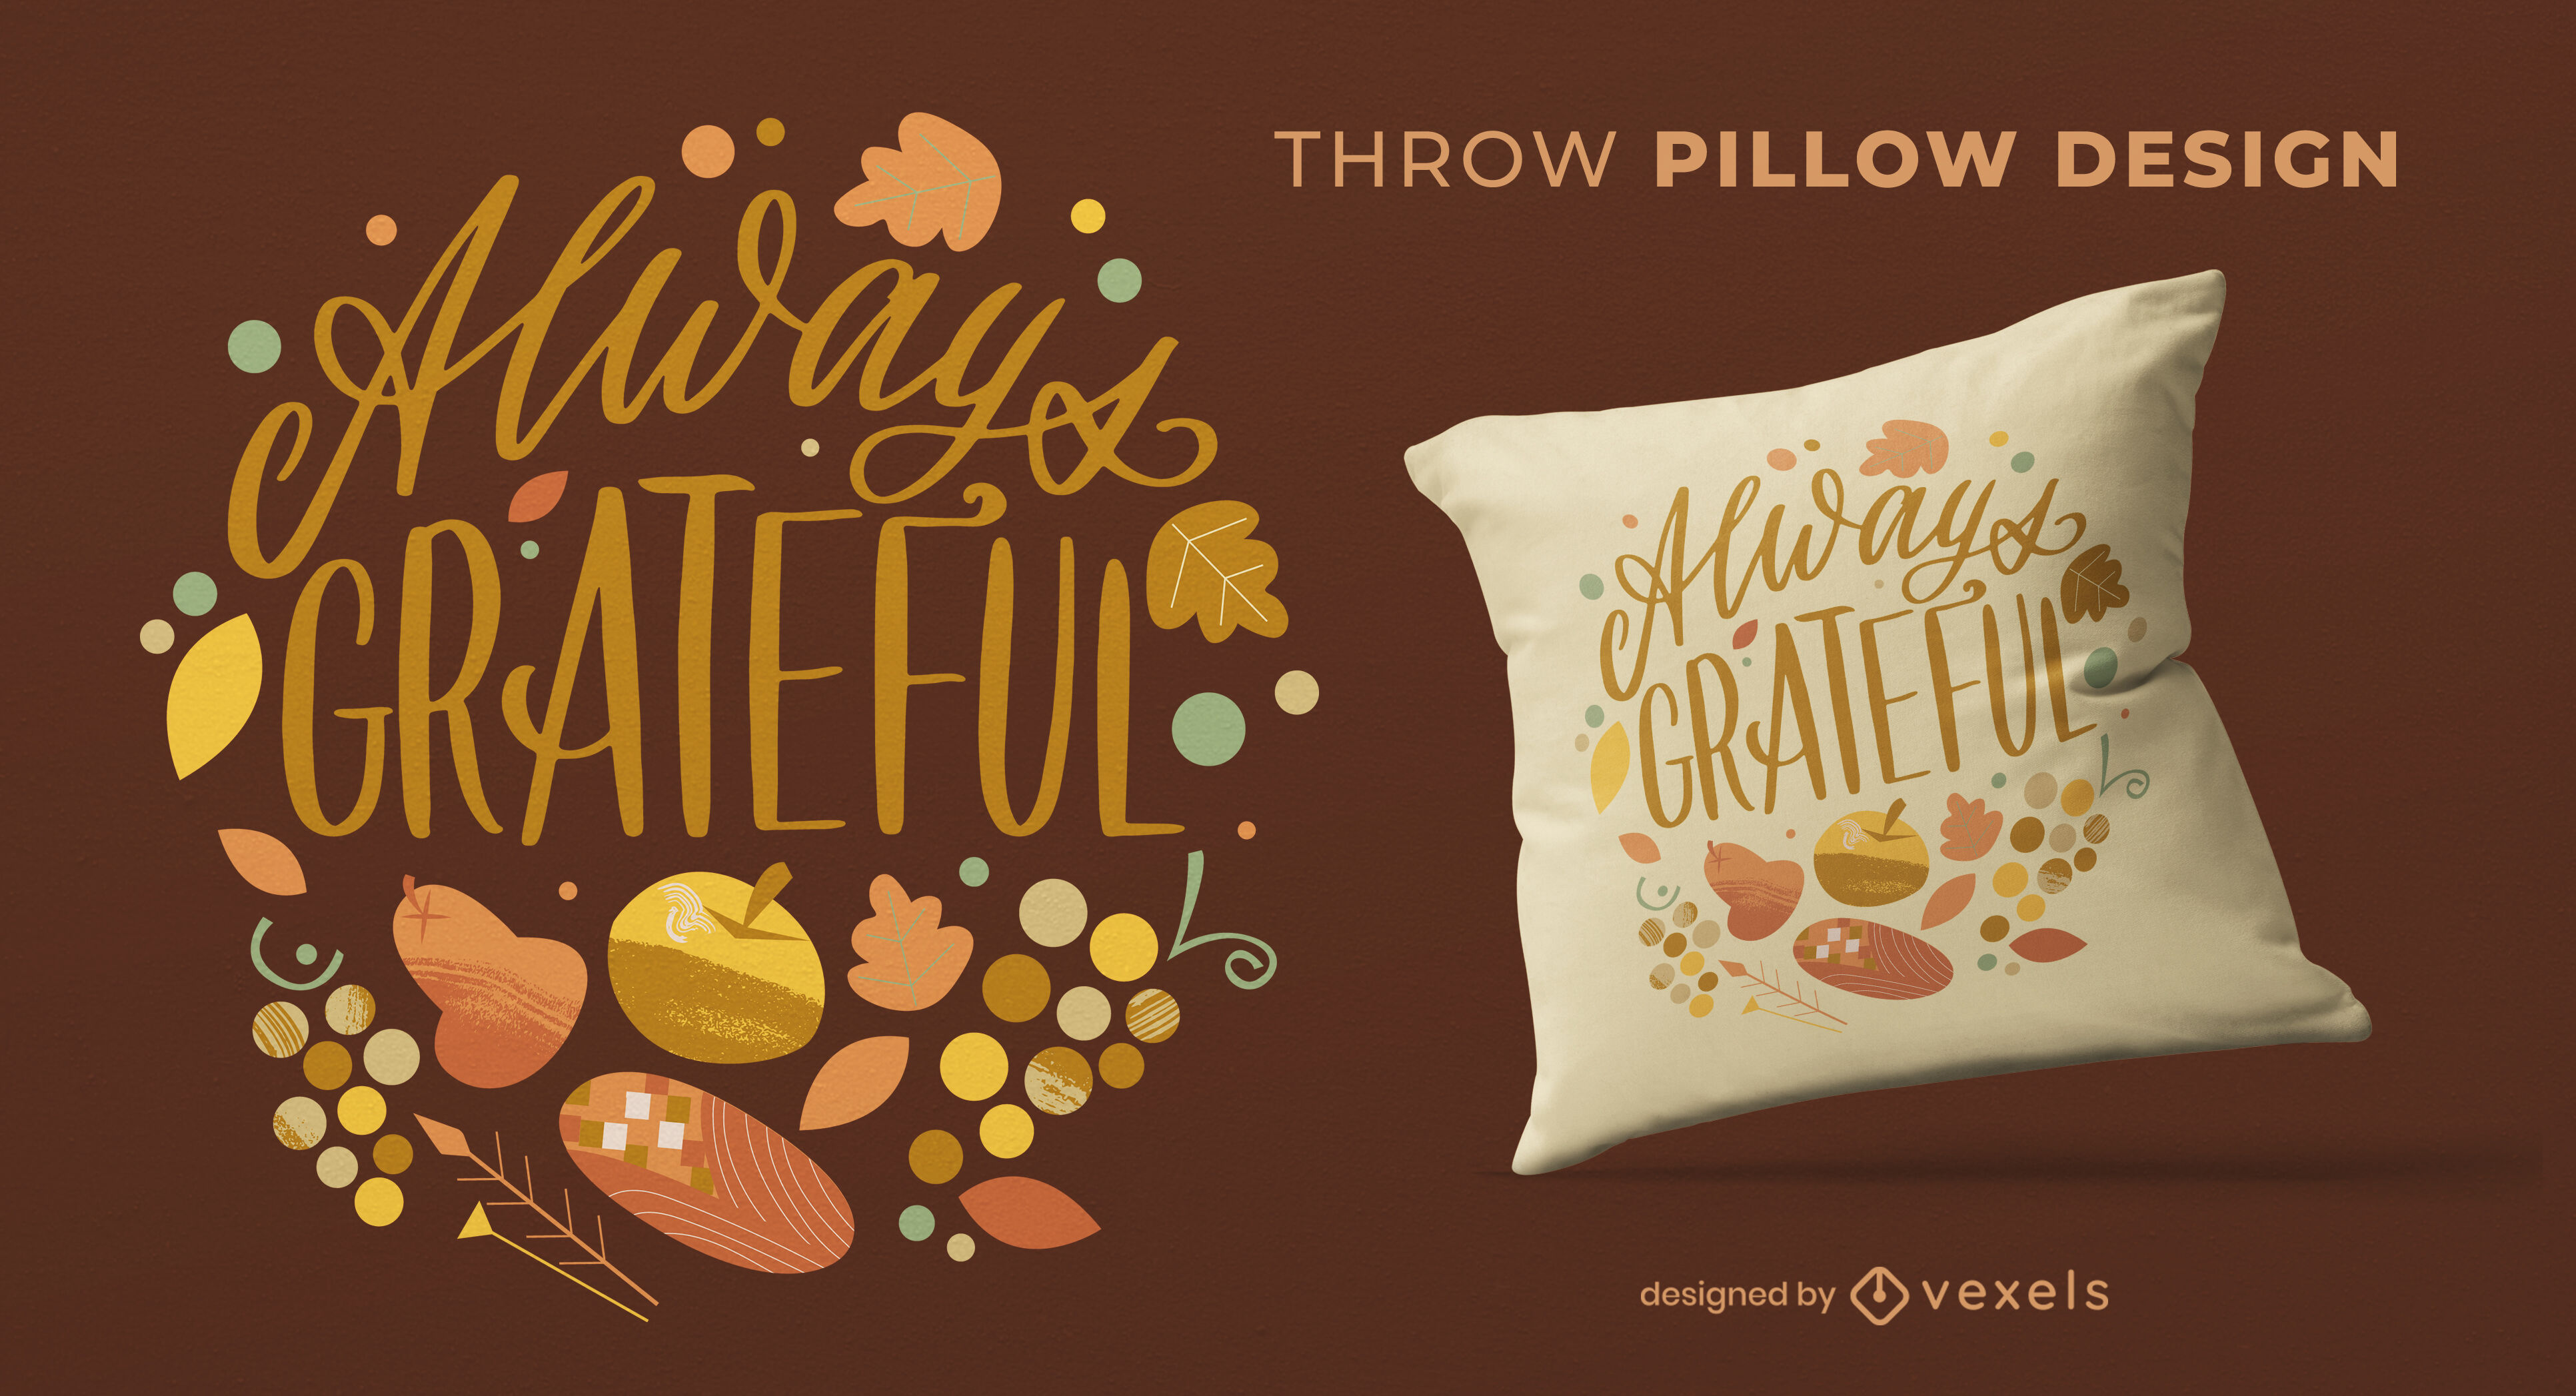 Grateful thanksgiving quote throw pillow